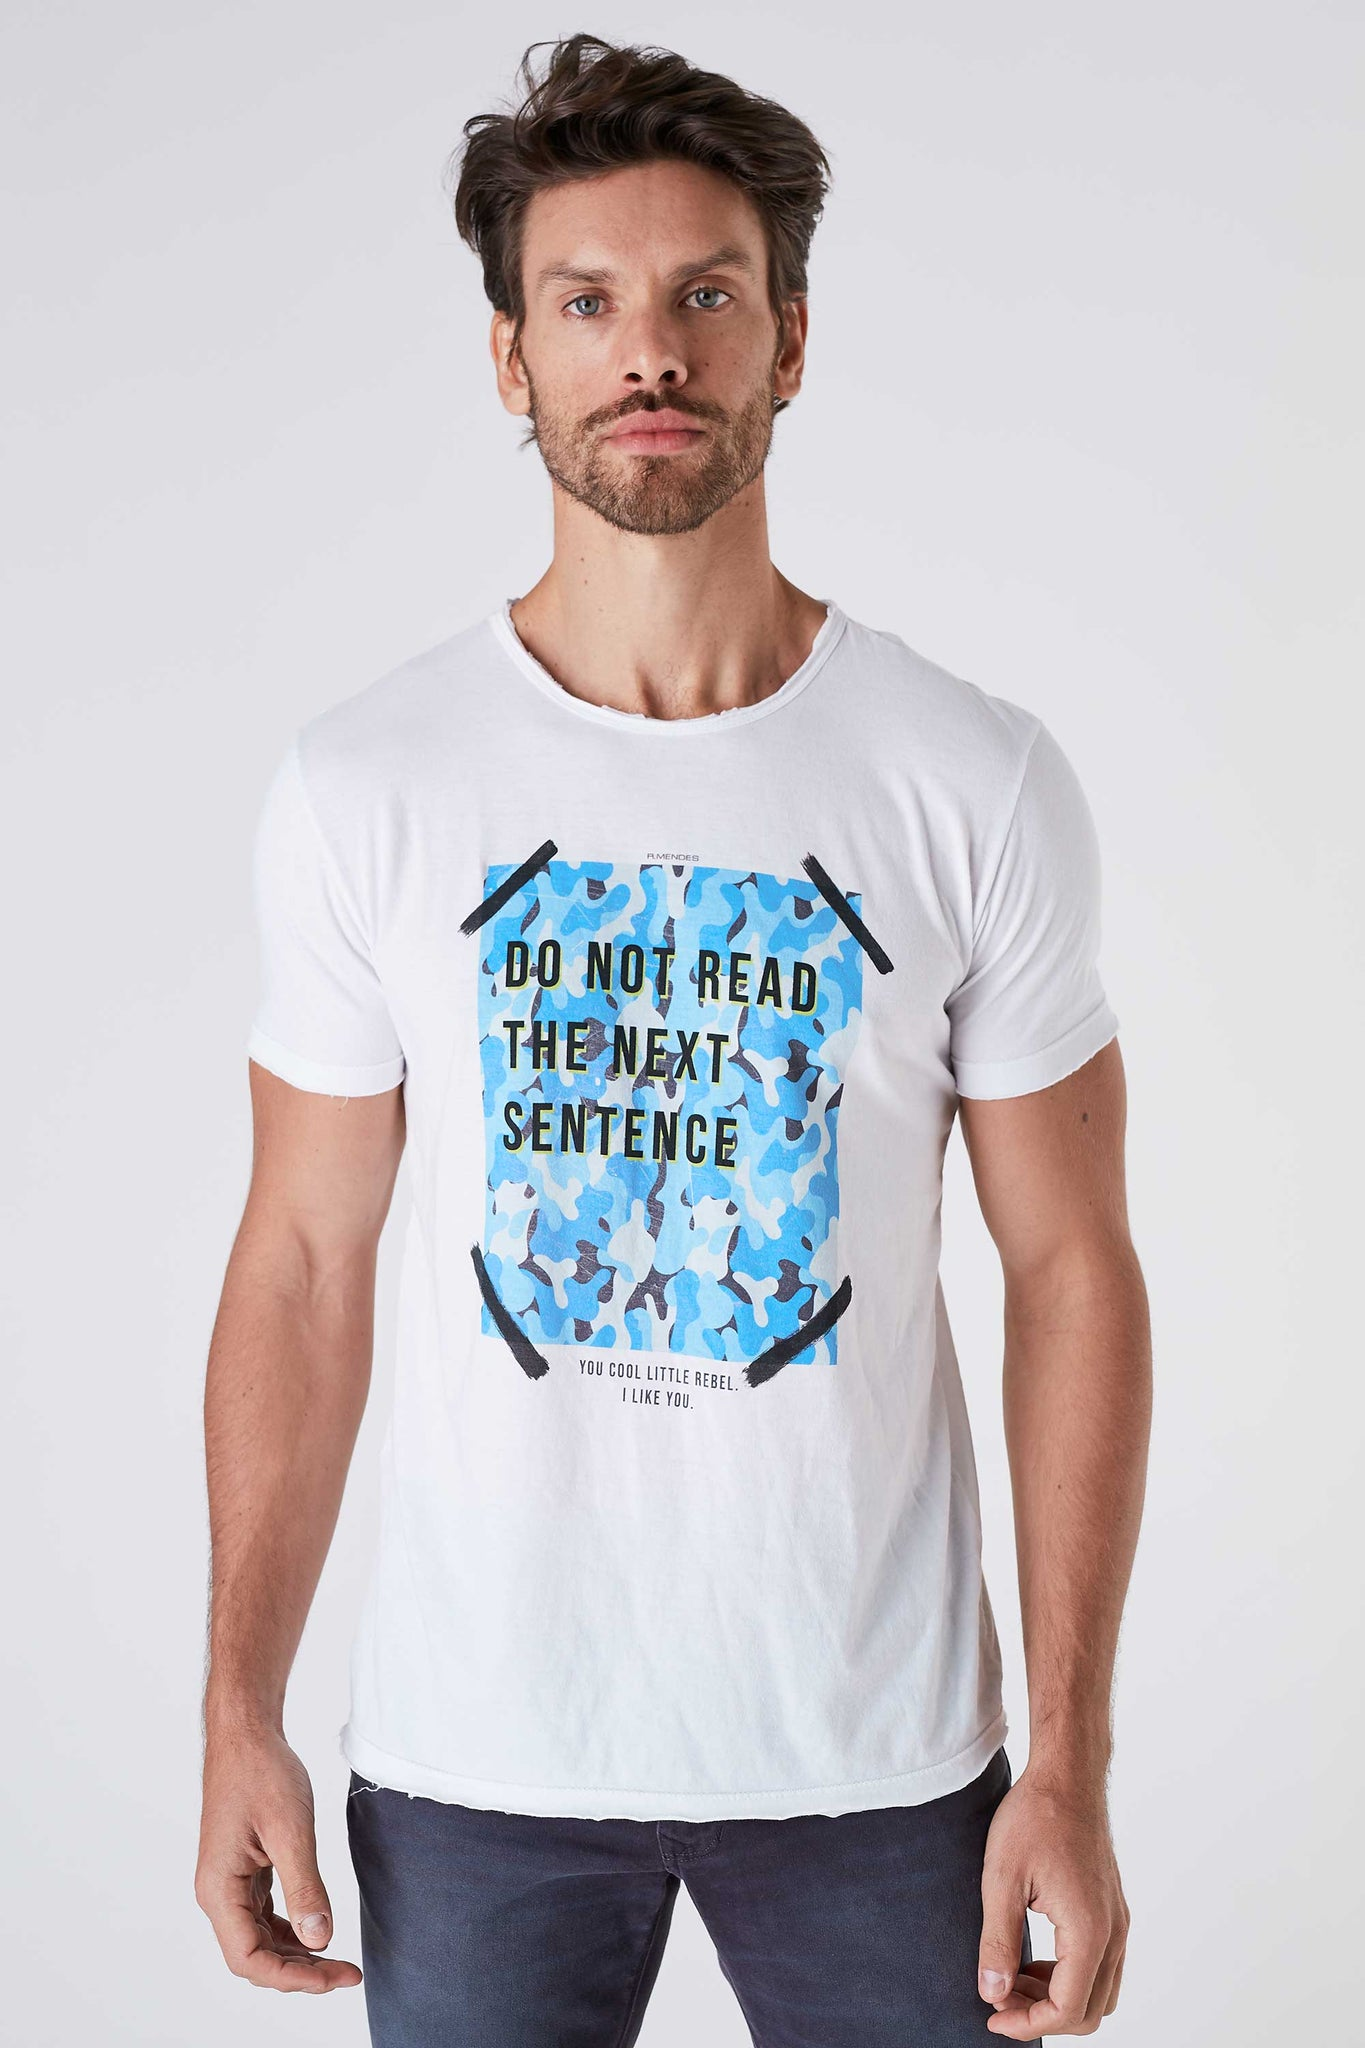 Camiseta Masculina Estampada Branca Do Not Read The Next Sentence